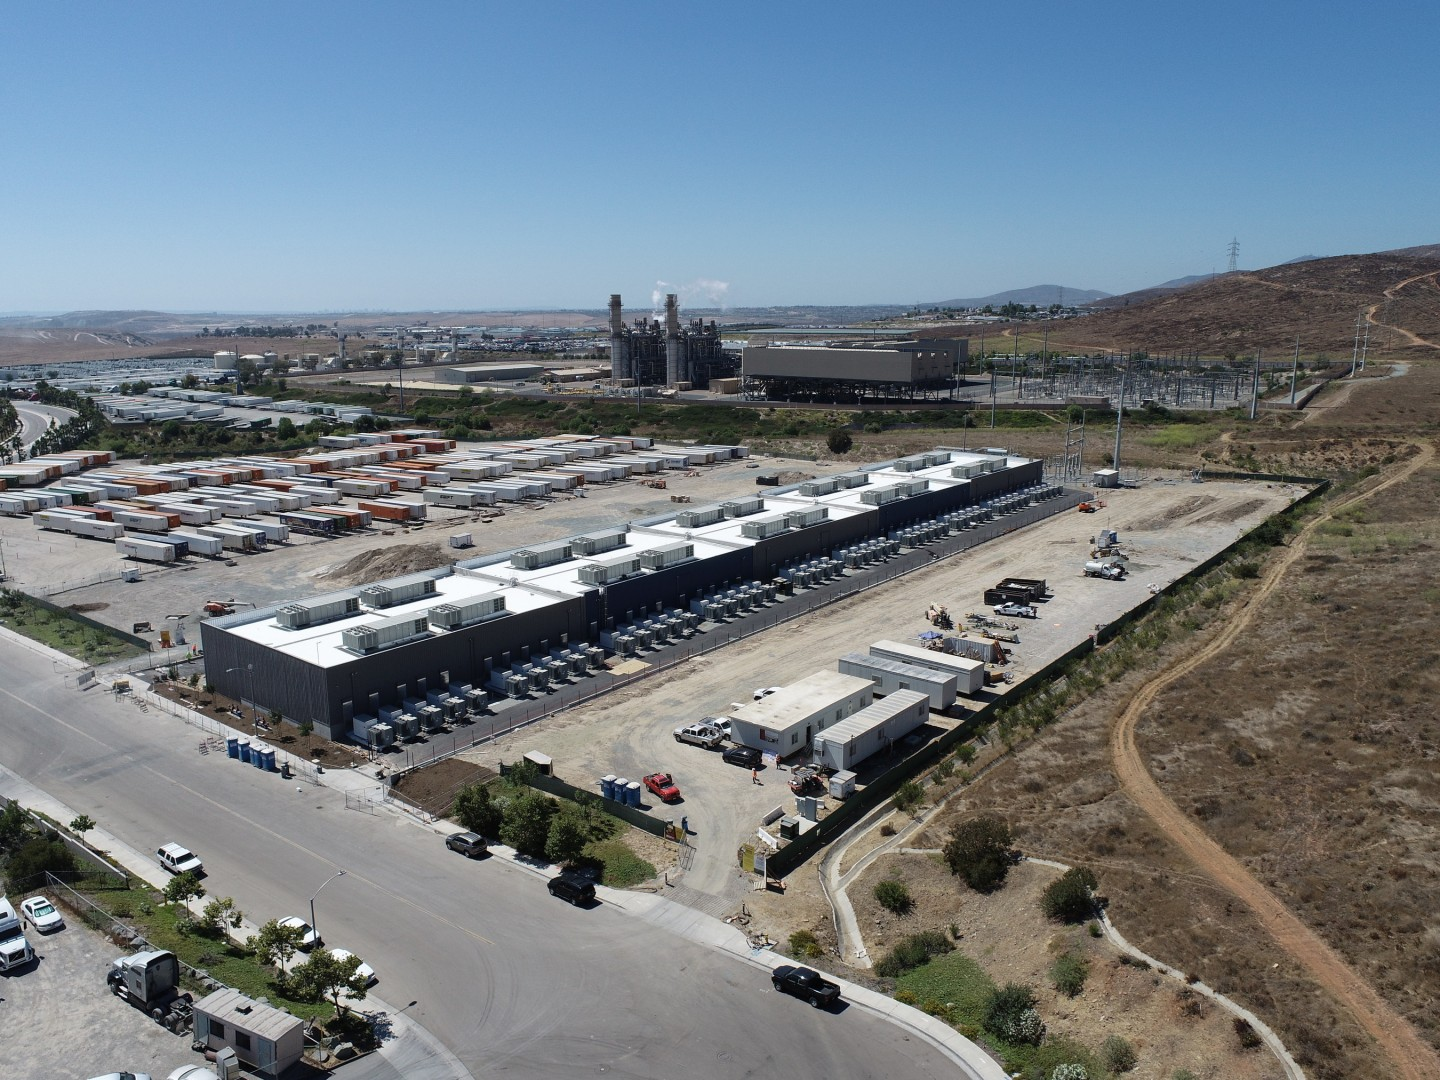 At the time of writing the Gateway Energy Storage project (pictured) has a capacity of 230MW, but this will reach 250MW by the end of August 2020. Image: LS Power.